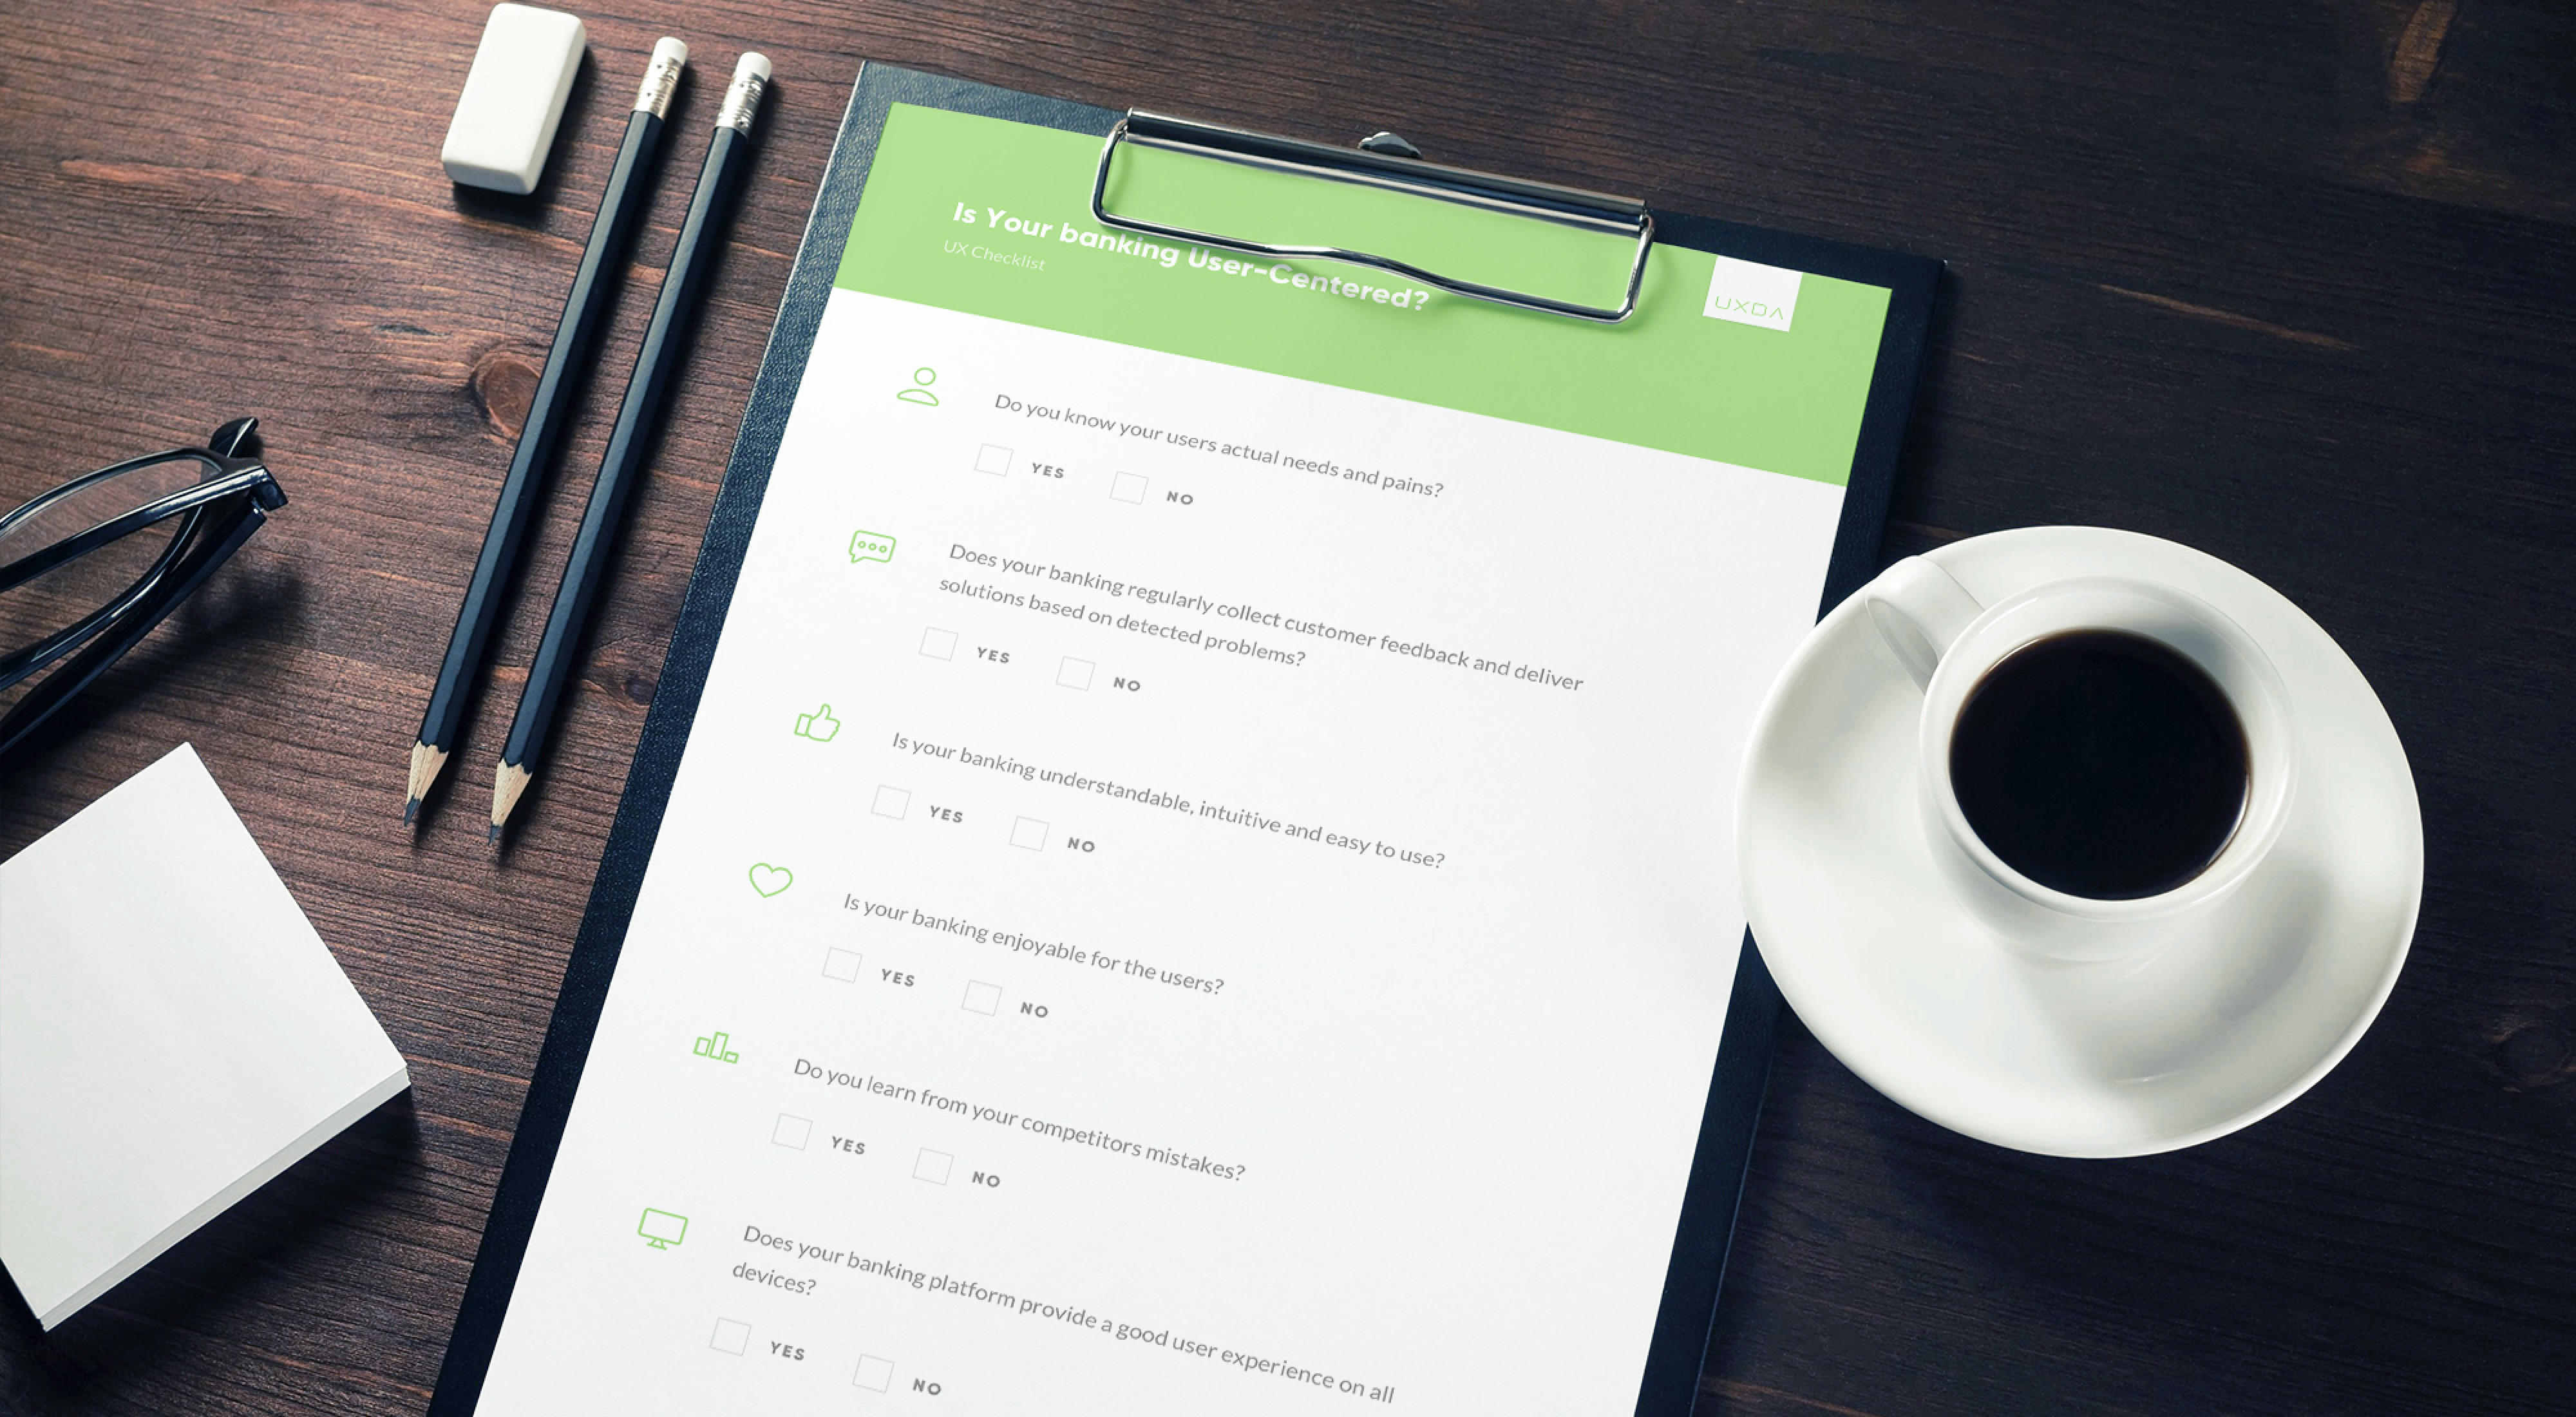 UX Design Checklist: Is Your Business User-Centered